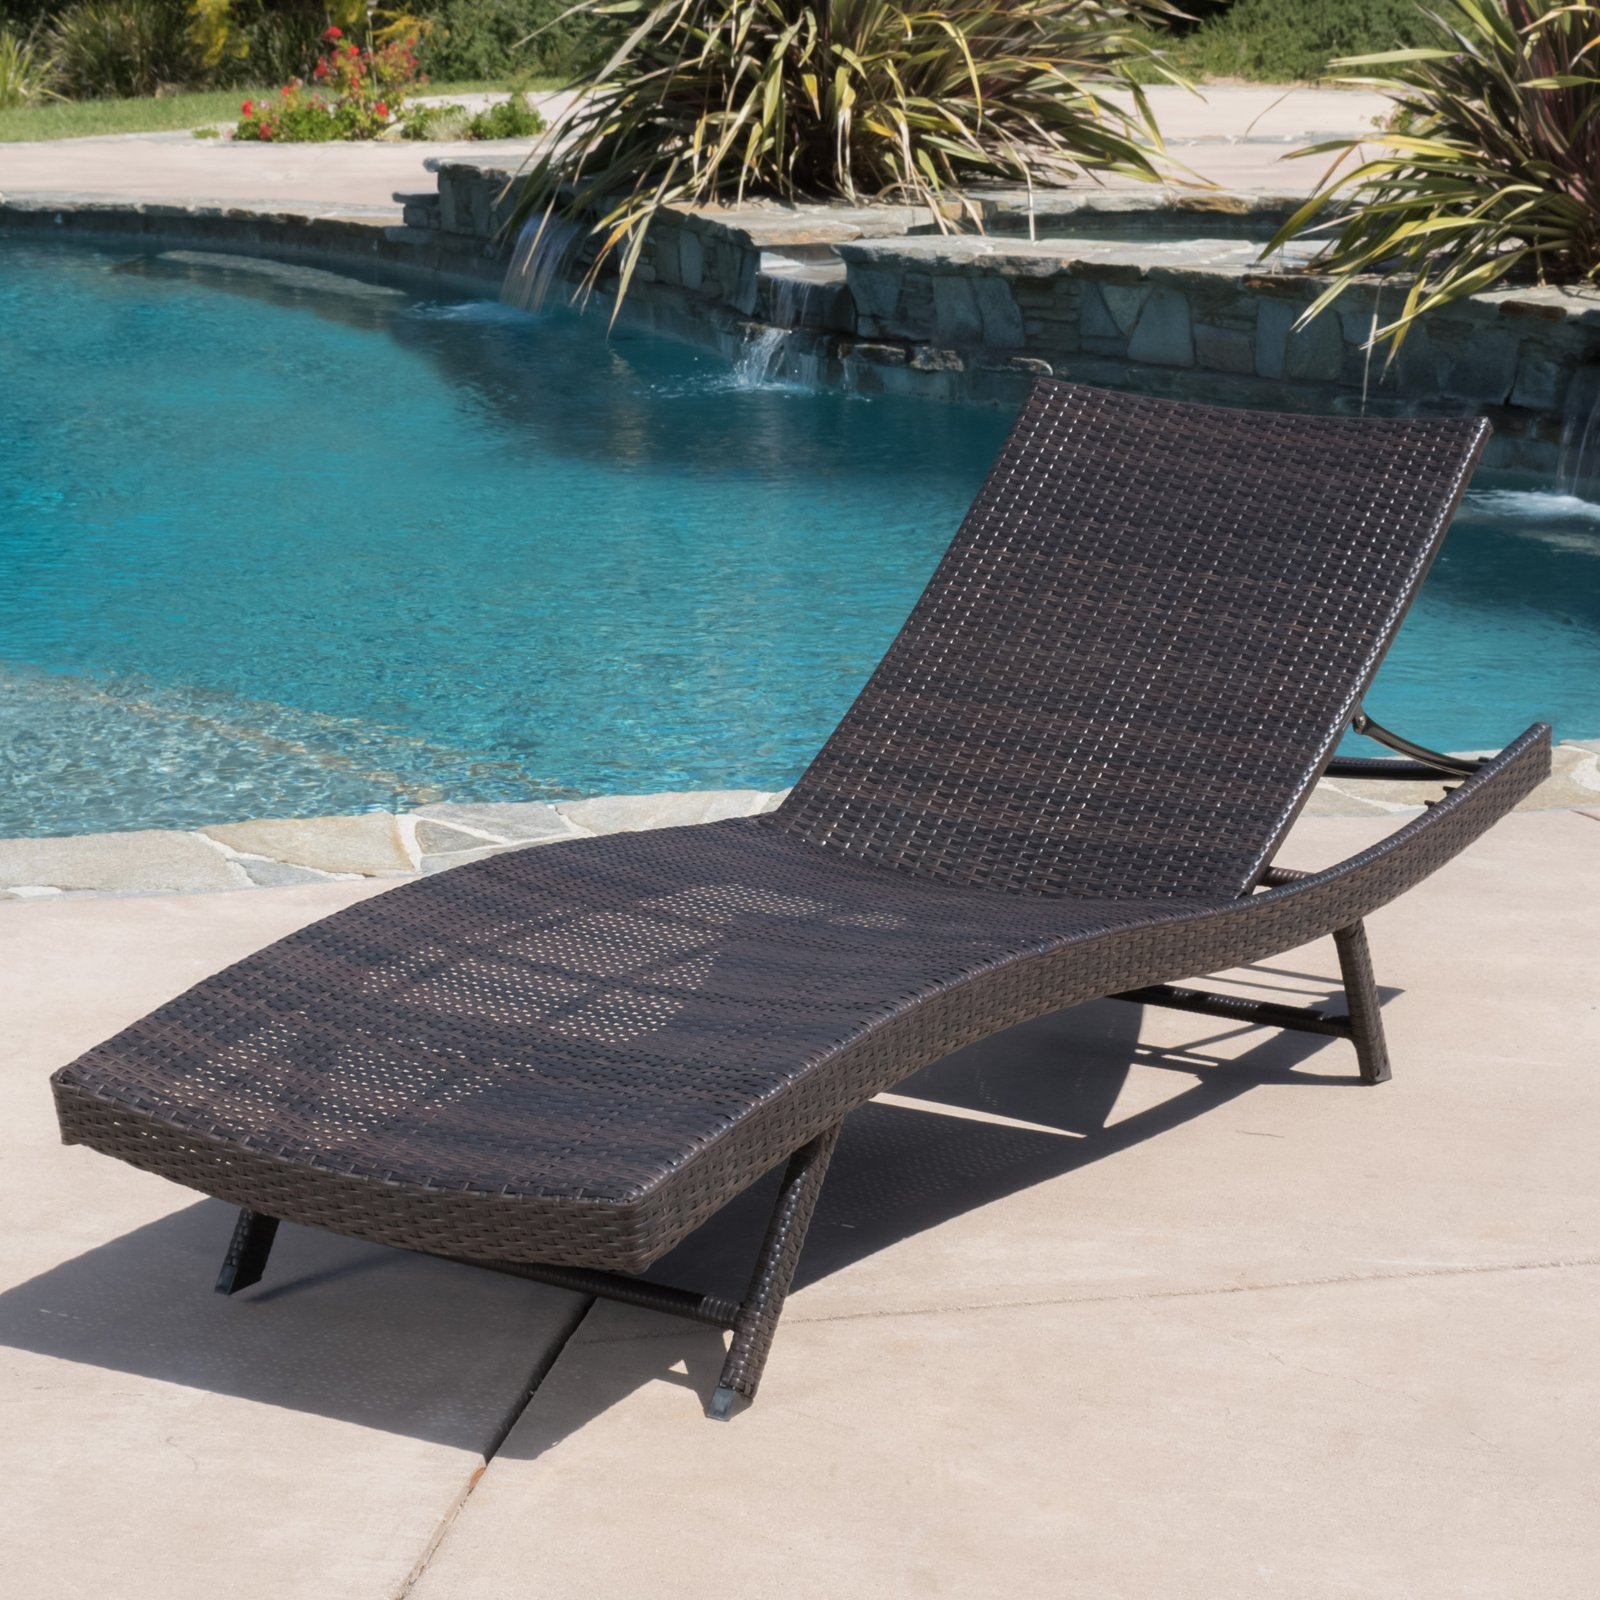 Best Selling Home Decor Kauai Wicker Patio Chaise Lounge Walmart